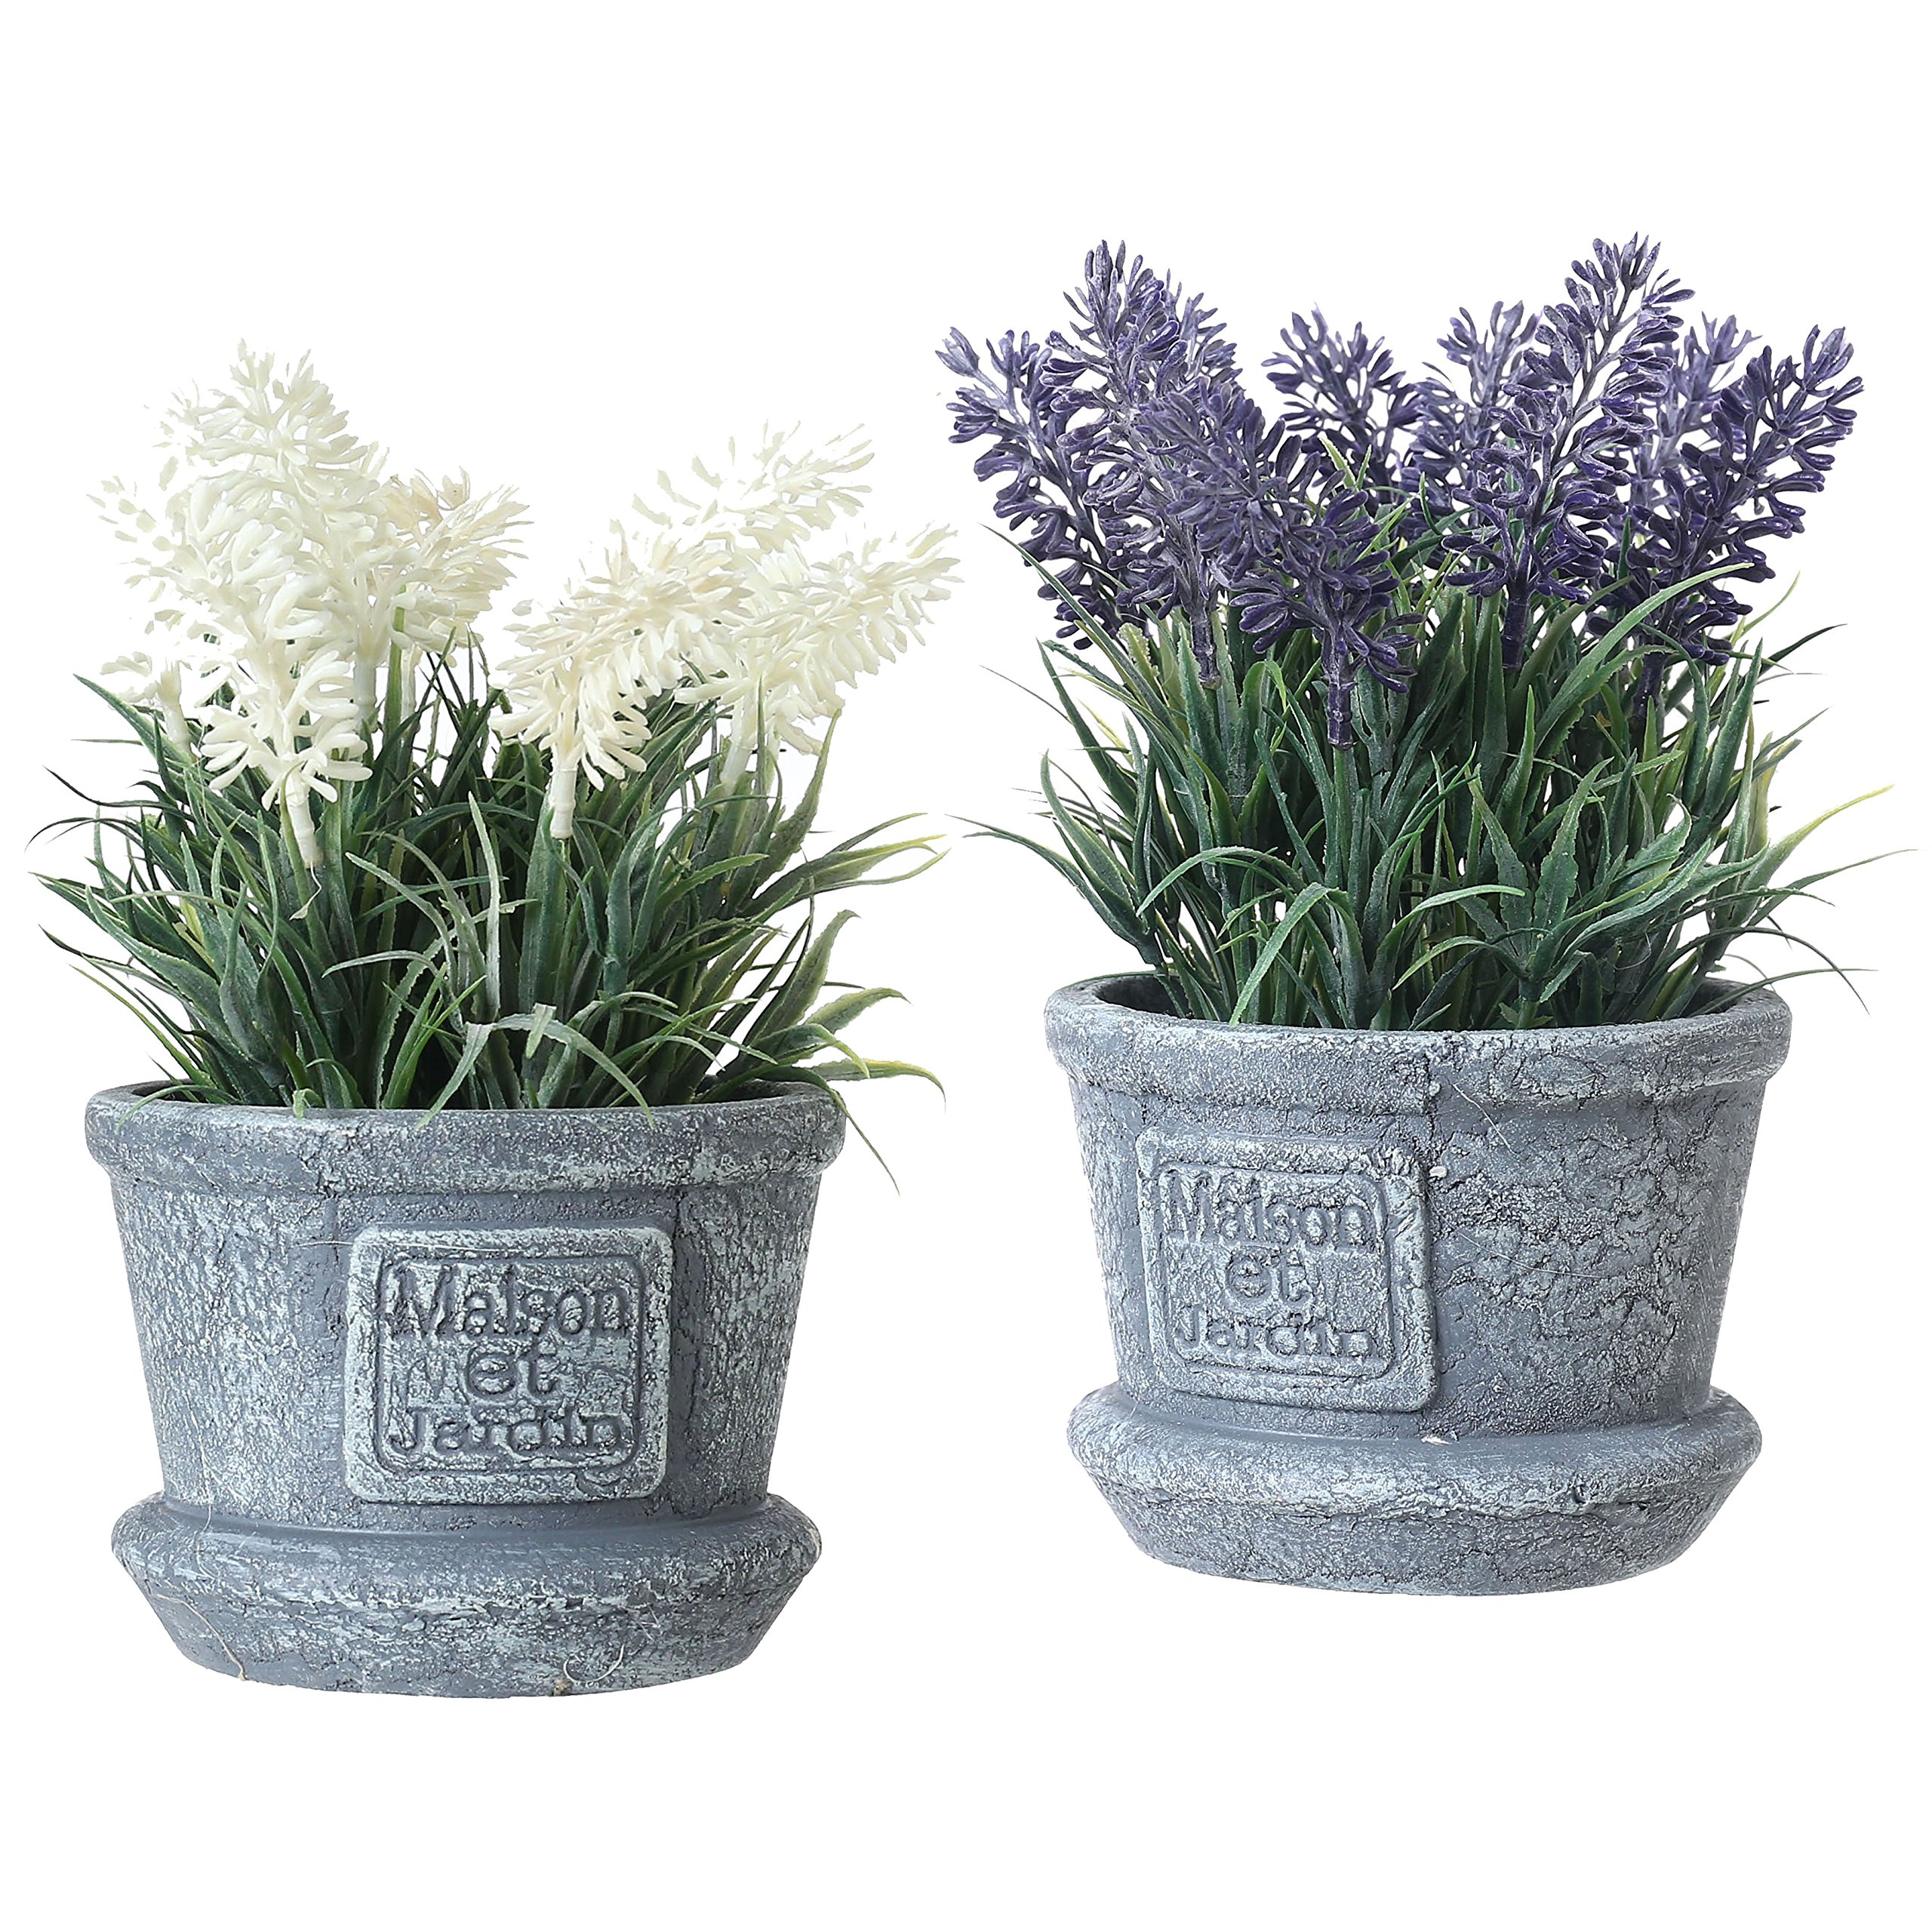 Decorative Artificial White & Purple Lavender Flower Plants in Cement Textured Planter Pots